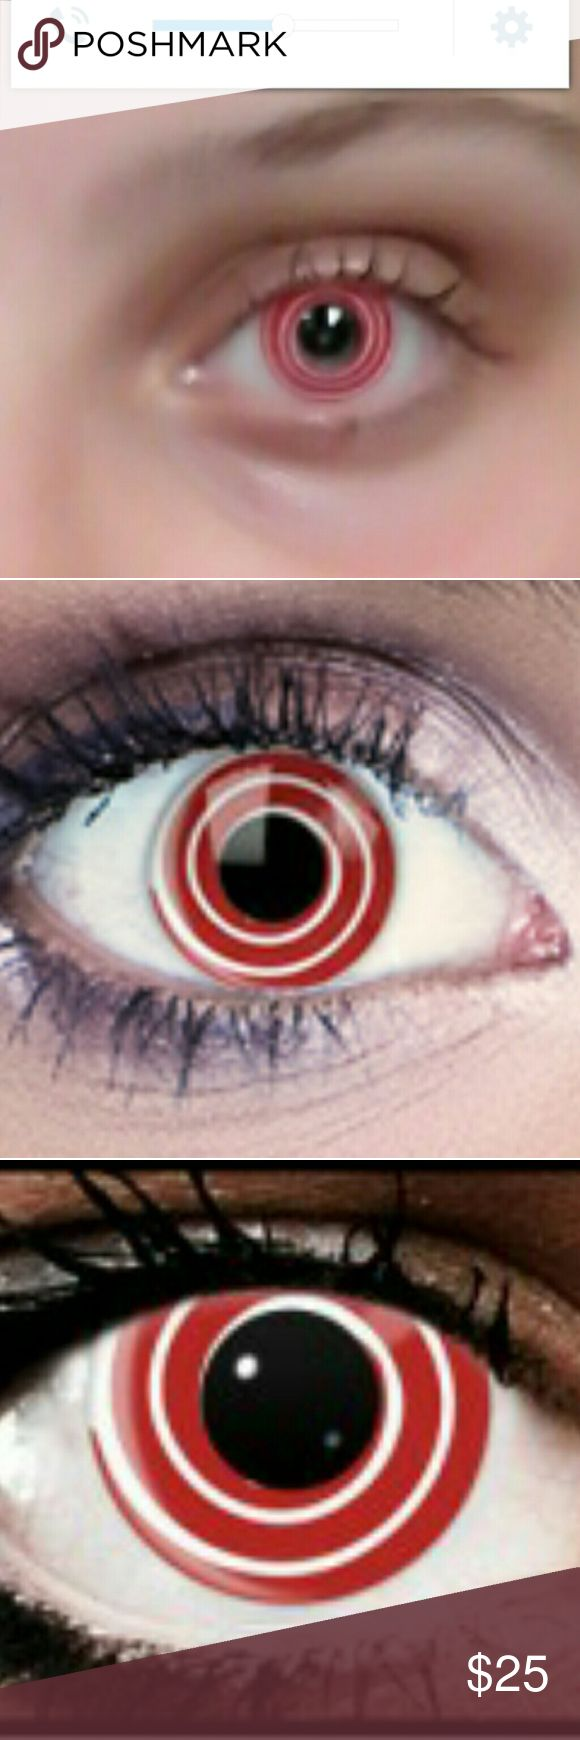 Red and White Spiral Contact lenses Non Prescription just wild red And white colored spiral contact lenses. Zoned out eyes are fun to freak out your friends and perfect for cosplay, Comicon dress up, or Halloween. These are good for one year from when you open your sealed contacts.They will last when properly taken care of.Please let them soak for the first 6 hours before wearing them. Size: 0.00 BC: 8.60  diameter Composition: 40% water Hema:60% Accessories Glasses